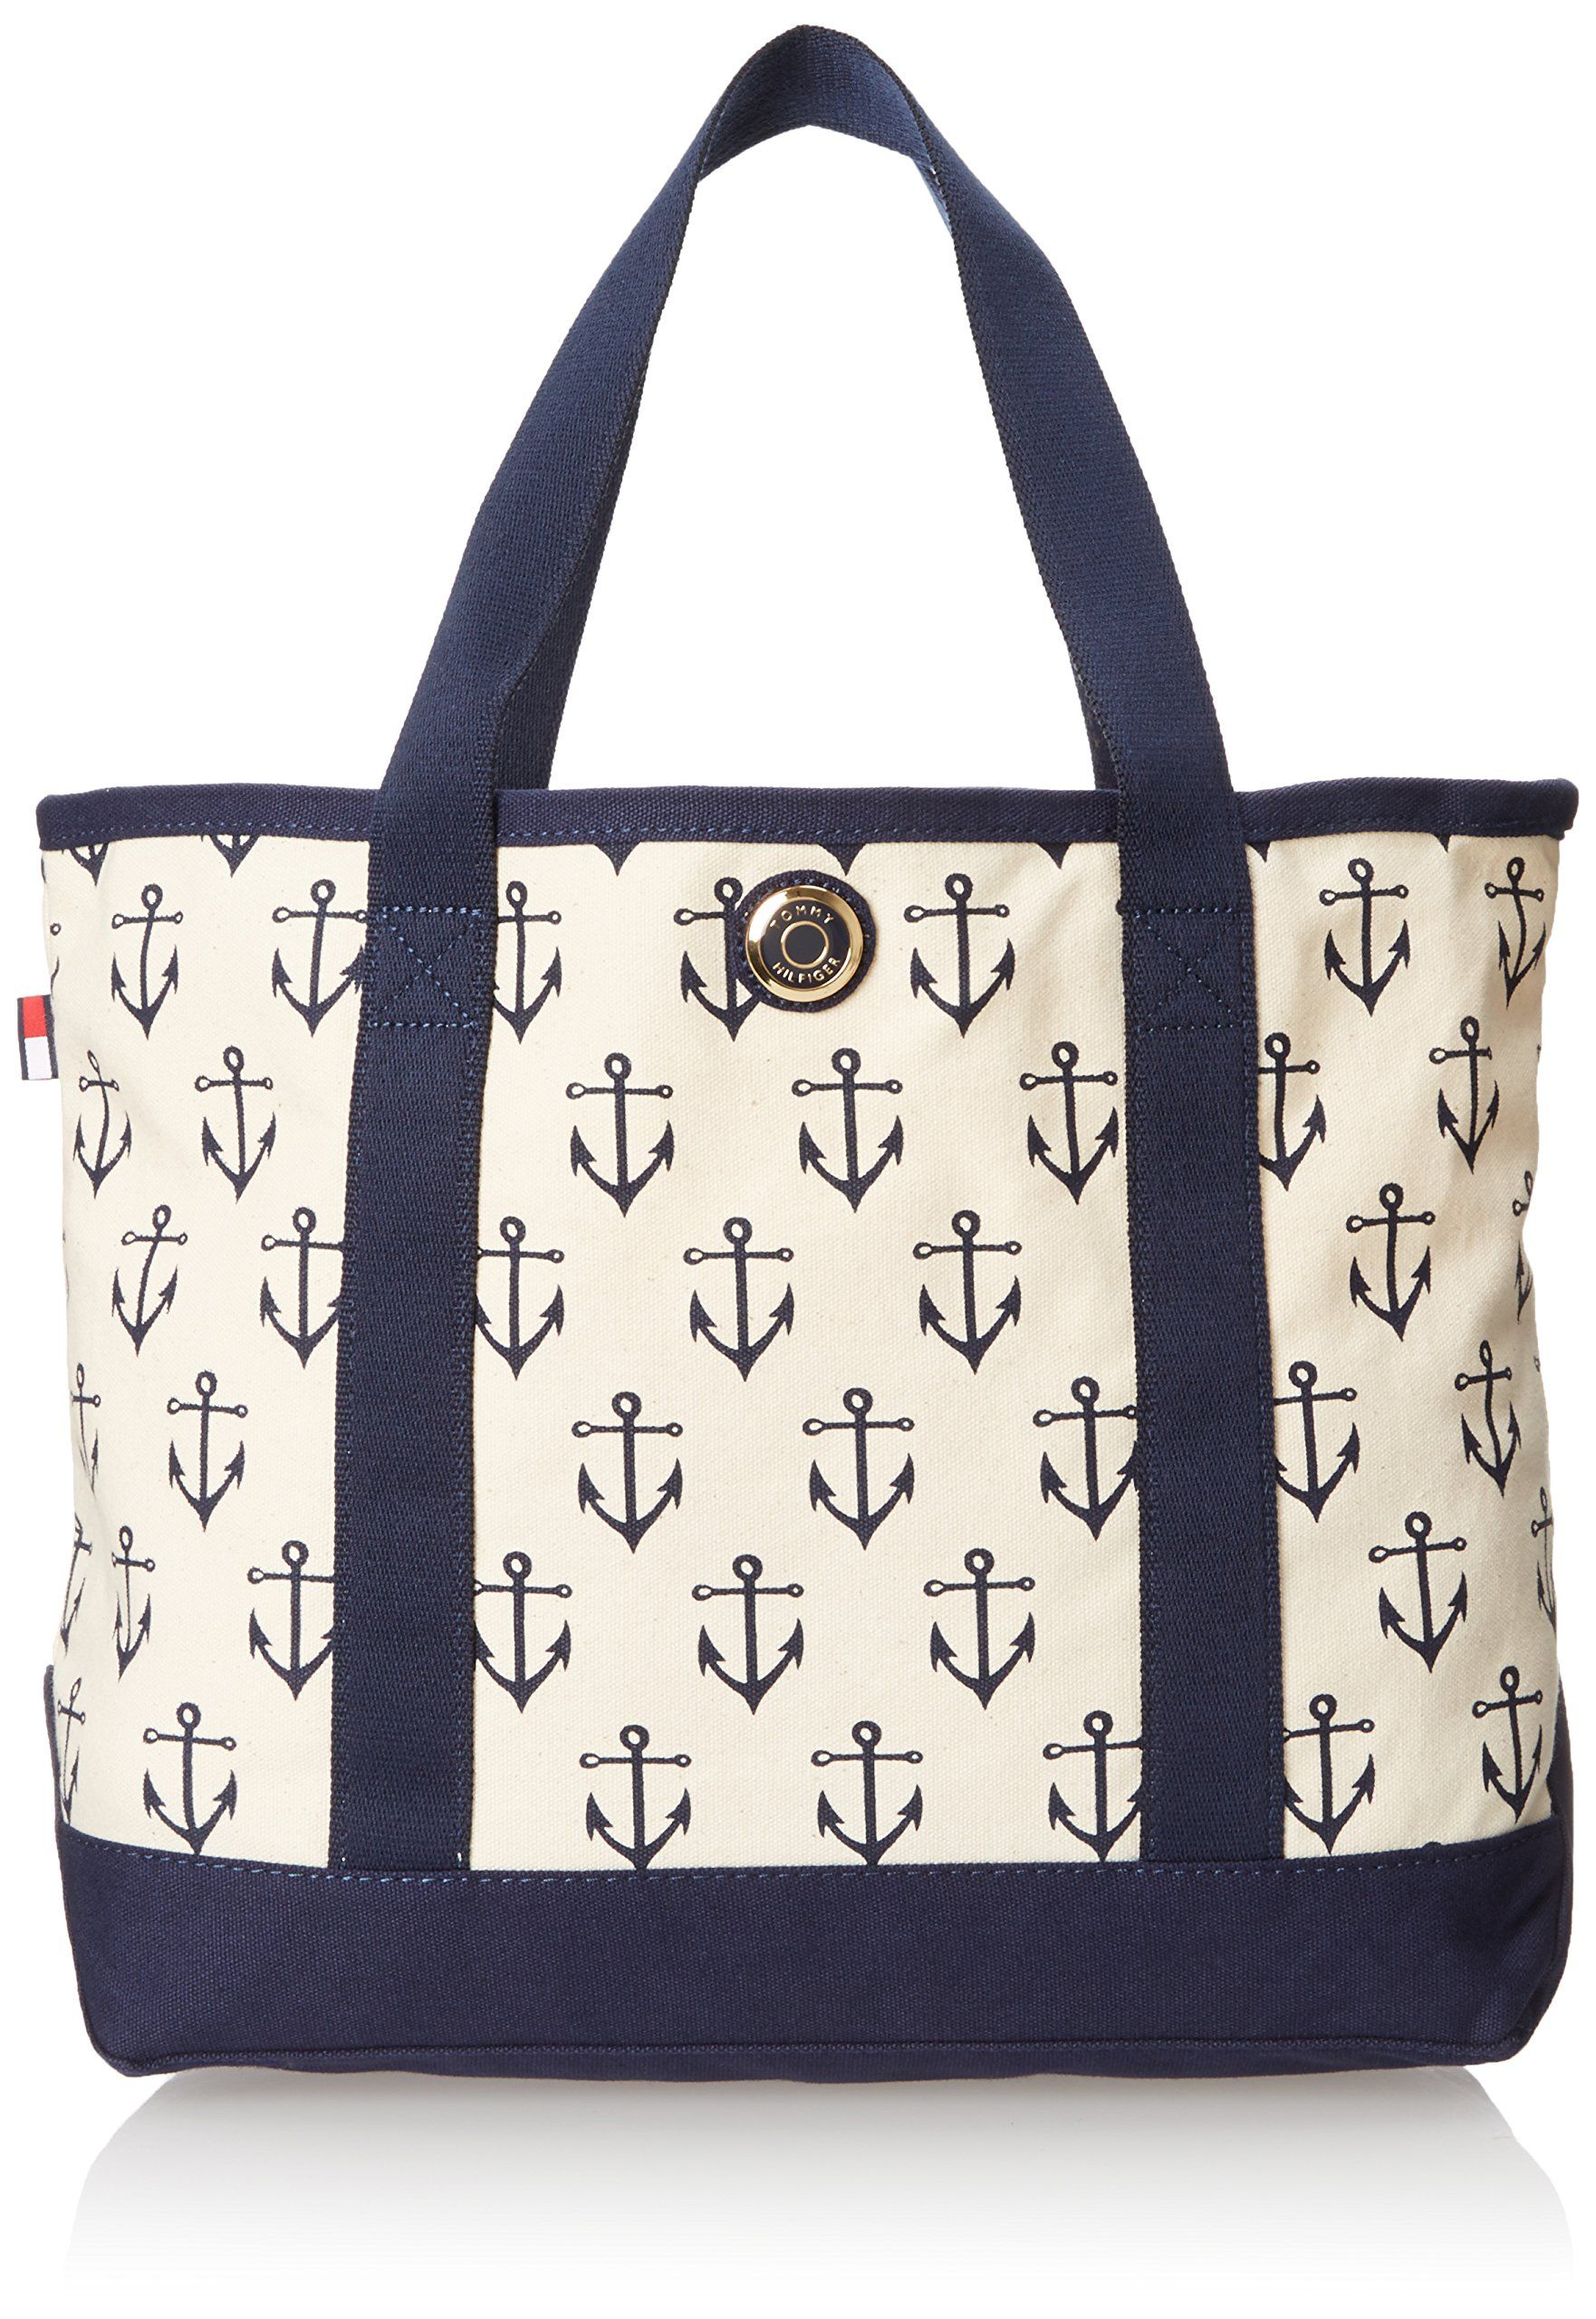 68eb7abb5e23 Tommy Hilfiger Canvas Anchor Print Large Shoulder Bag, Navy/Natural, One  Size